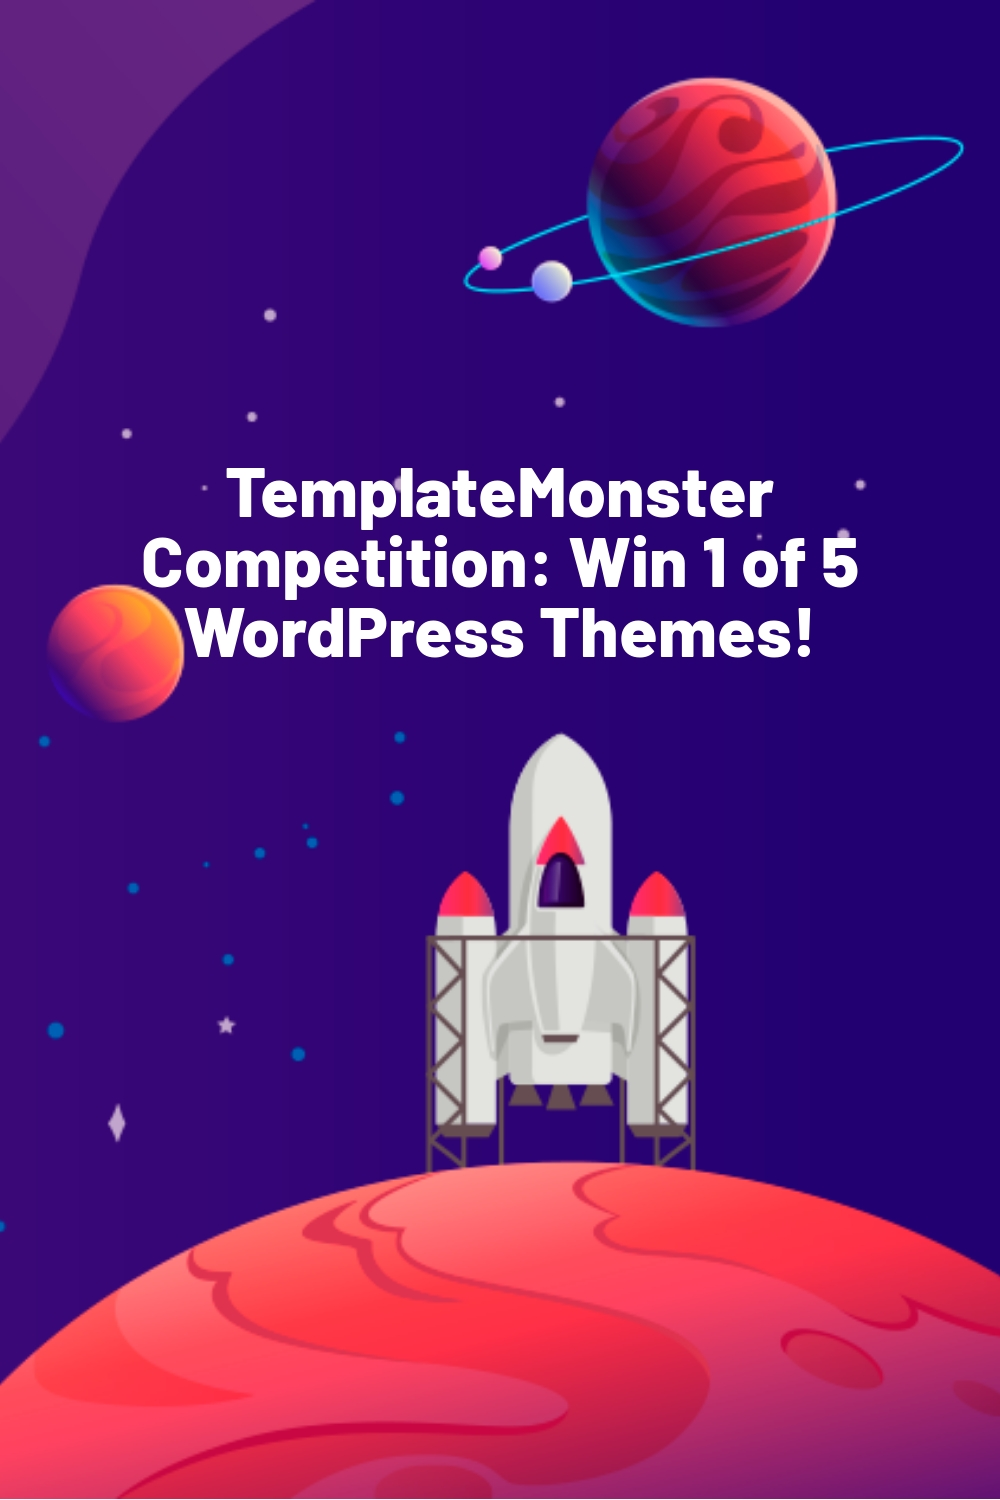 TemplateMonster Competition: Win 1 of 5 WordPress Themes!